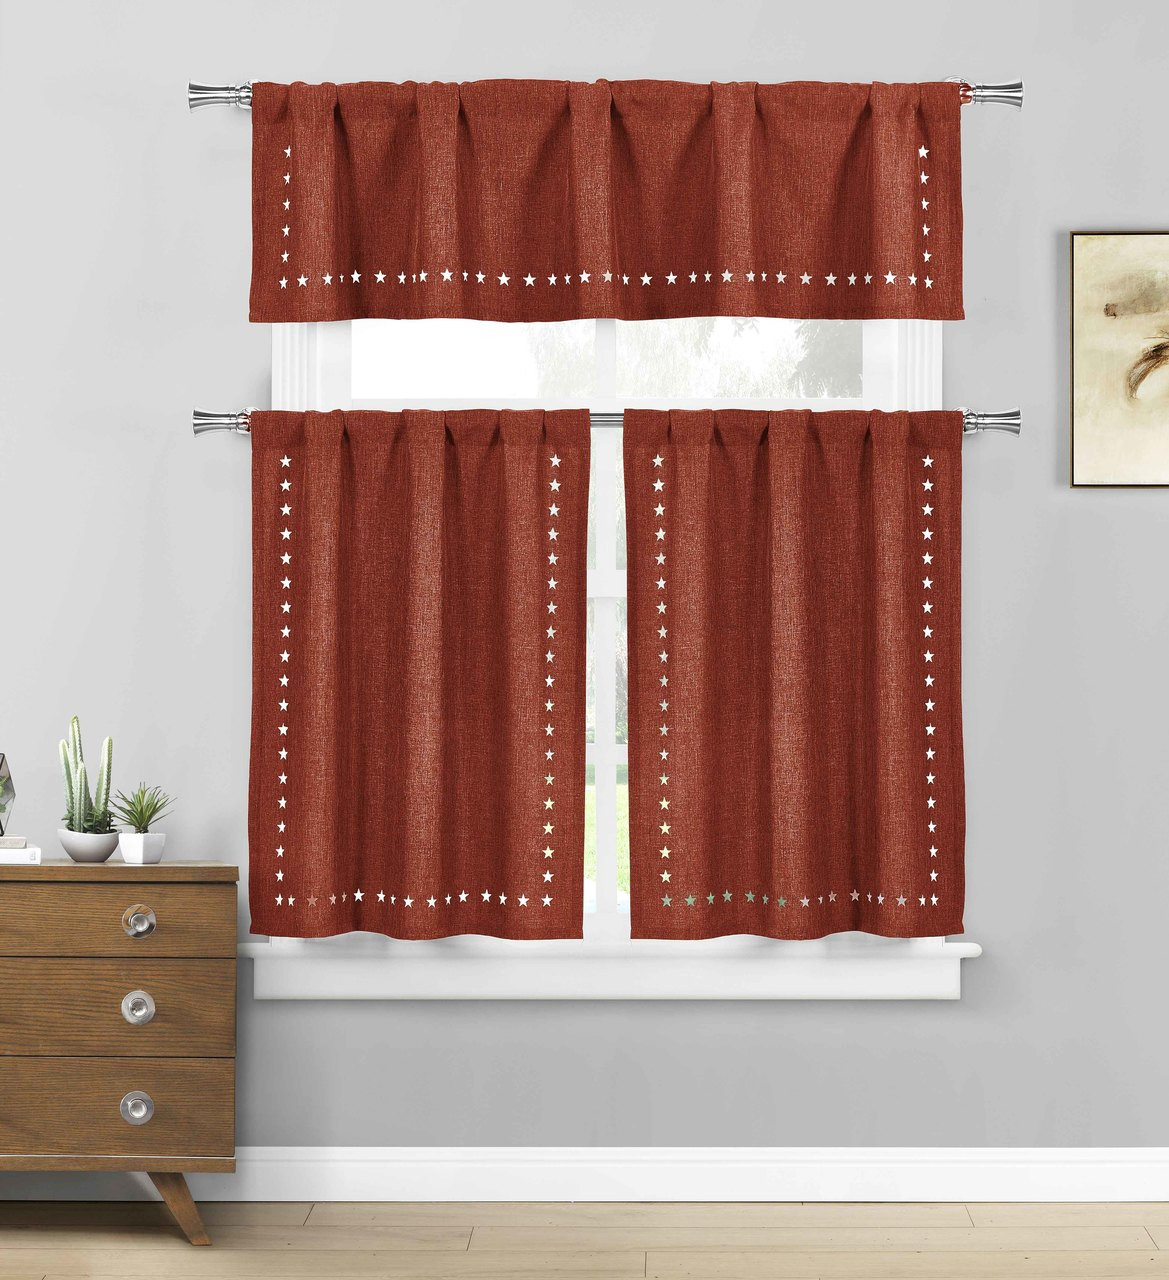 Burgundy 3 Pc Kitchen Cafe Tier Window Curtain Set Stars Cut Out Pattern Bathroom And More